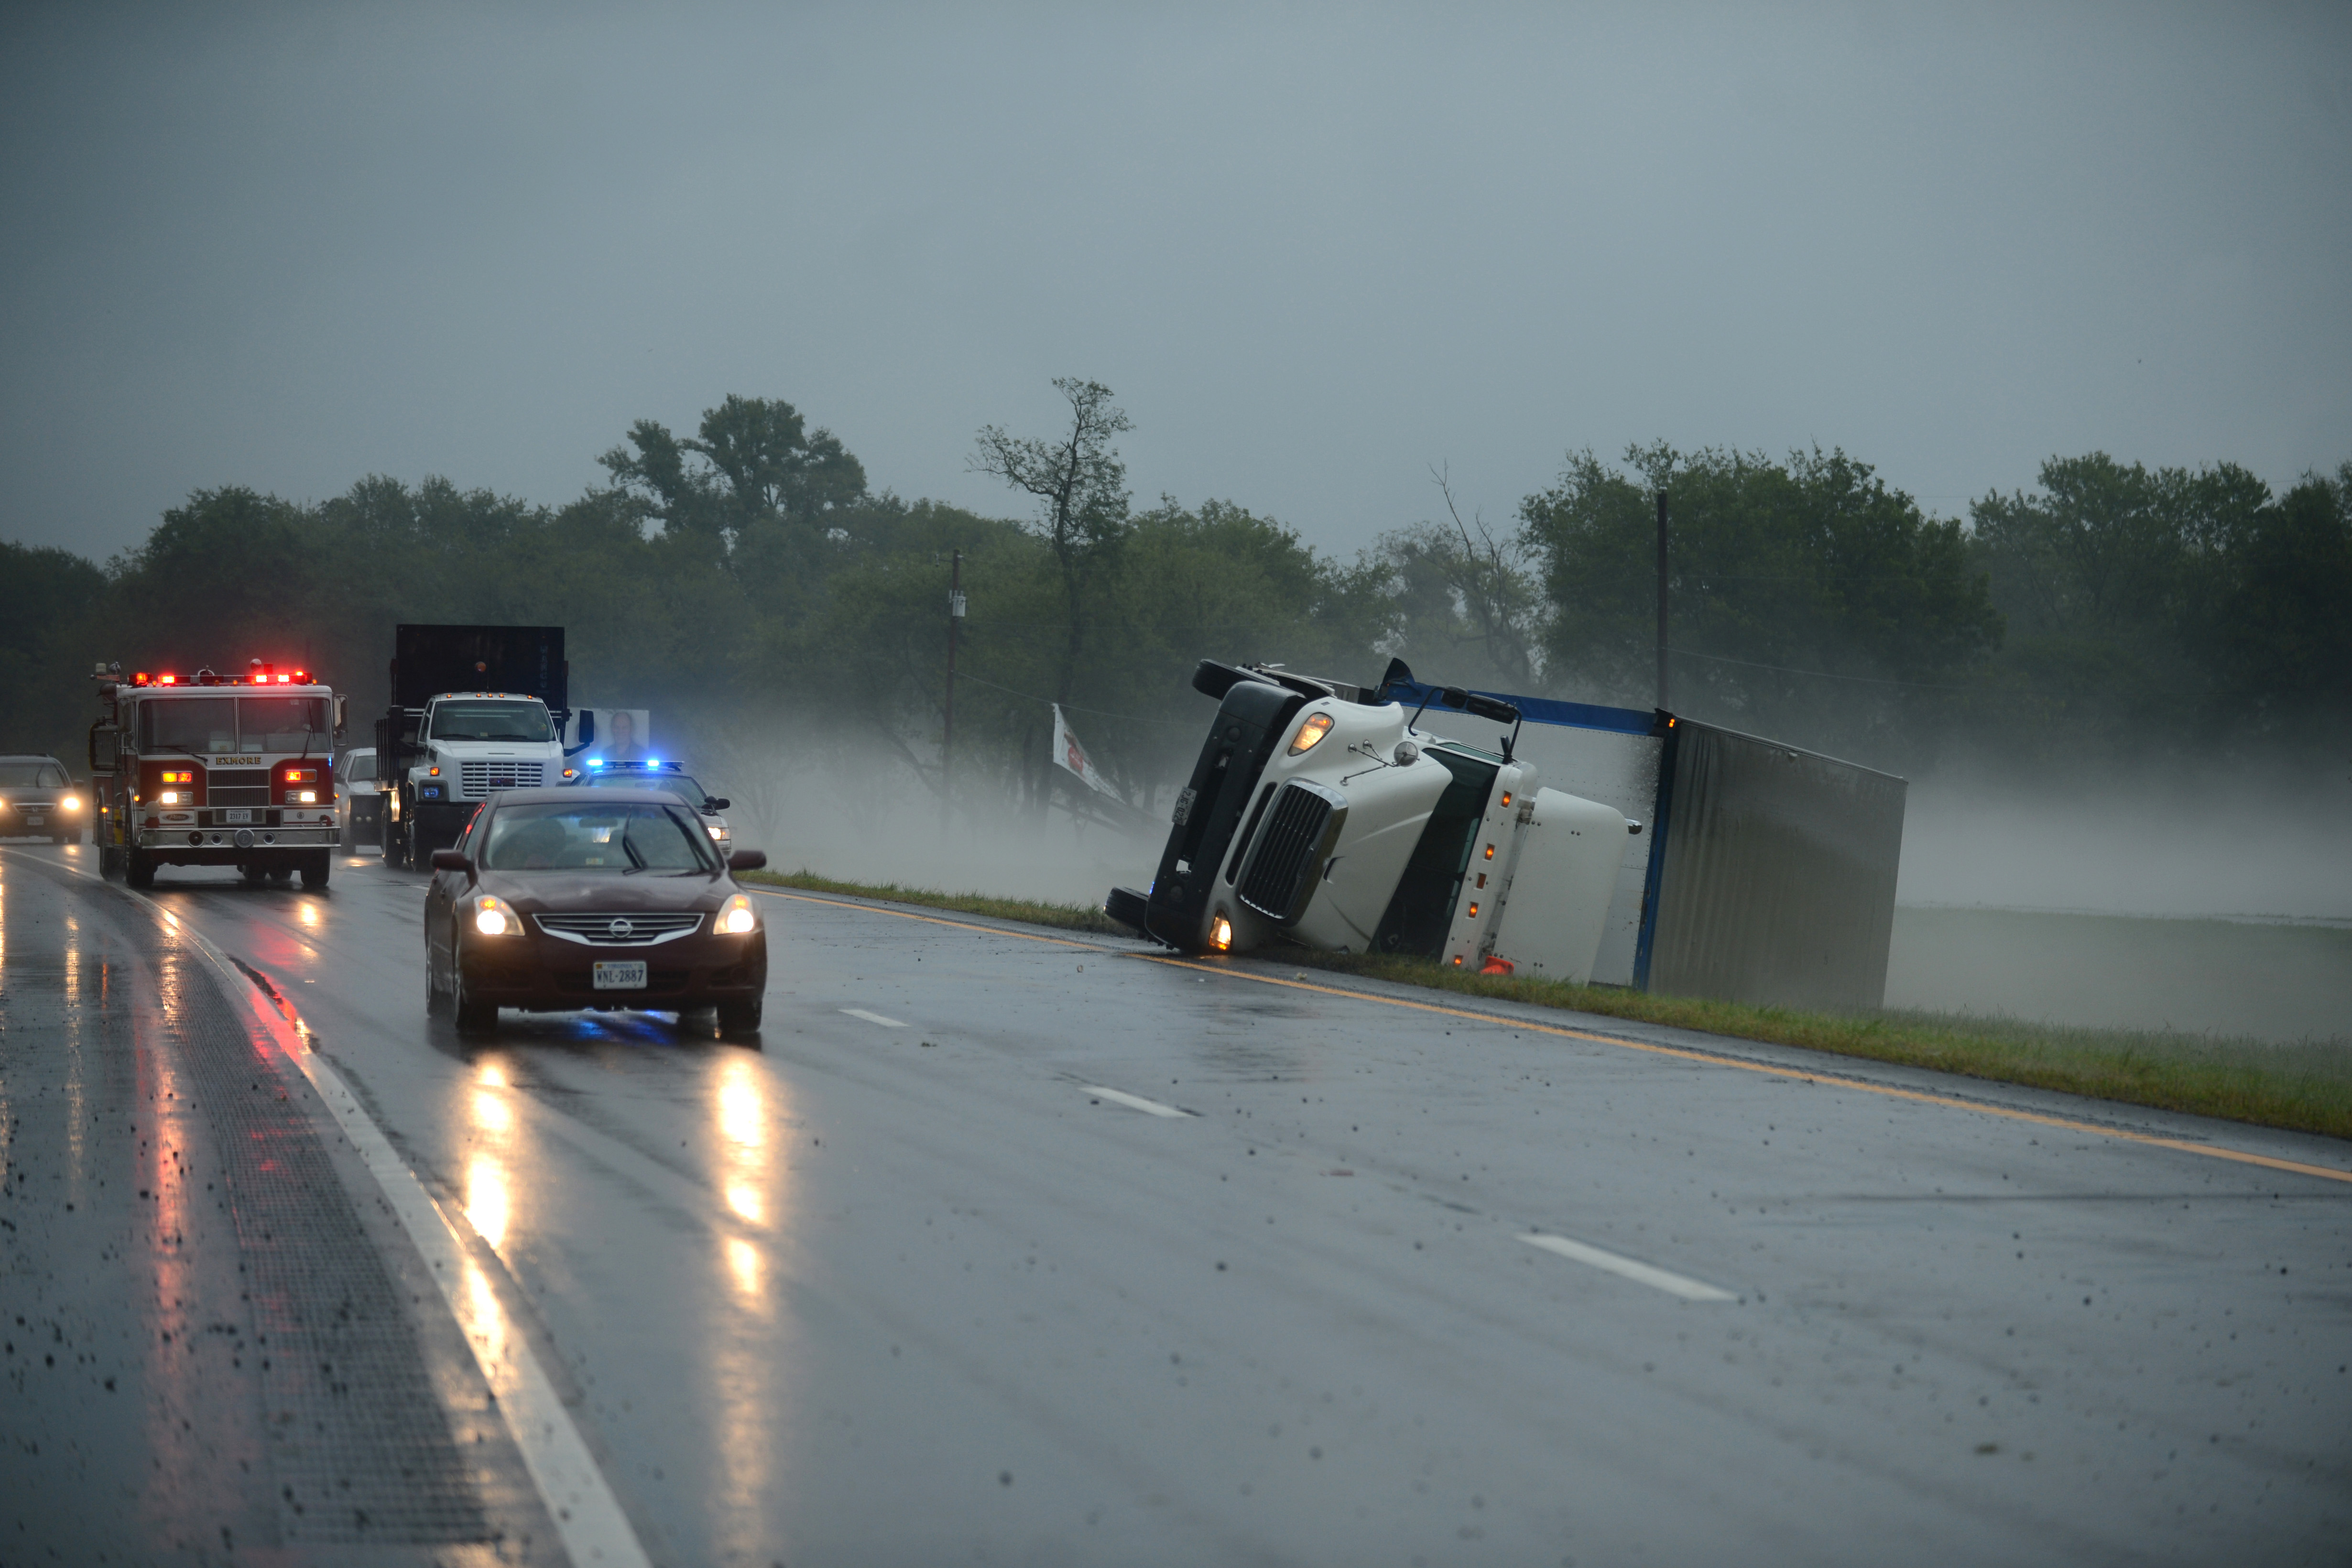 A tractor trailer truck lies on its side in the median of U.S. Route 13 while a fire engine responds to a nearby campground after a severe storm passed through the area, Cheriton, Va, July 24, 2014.